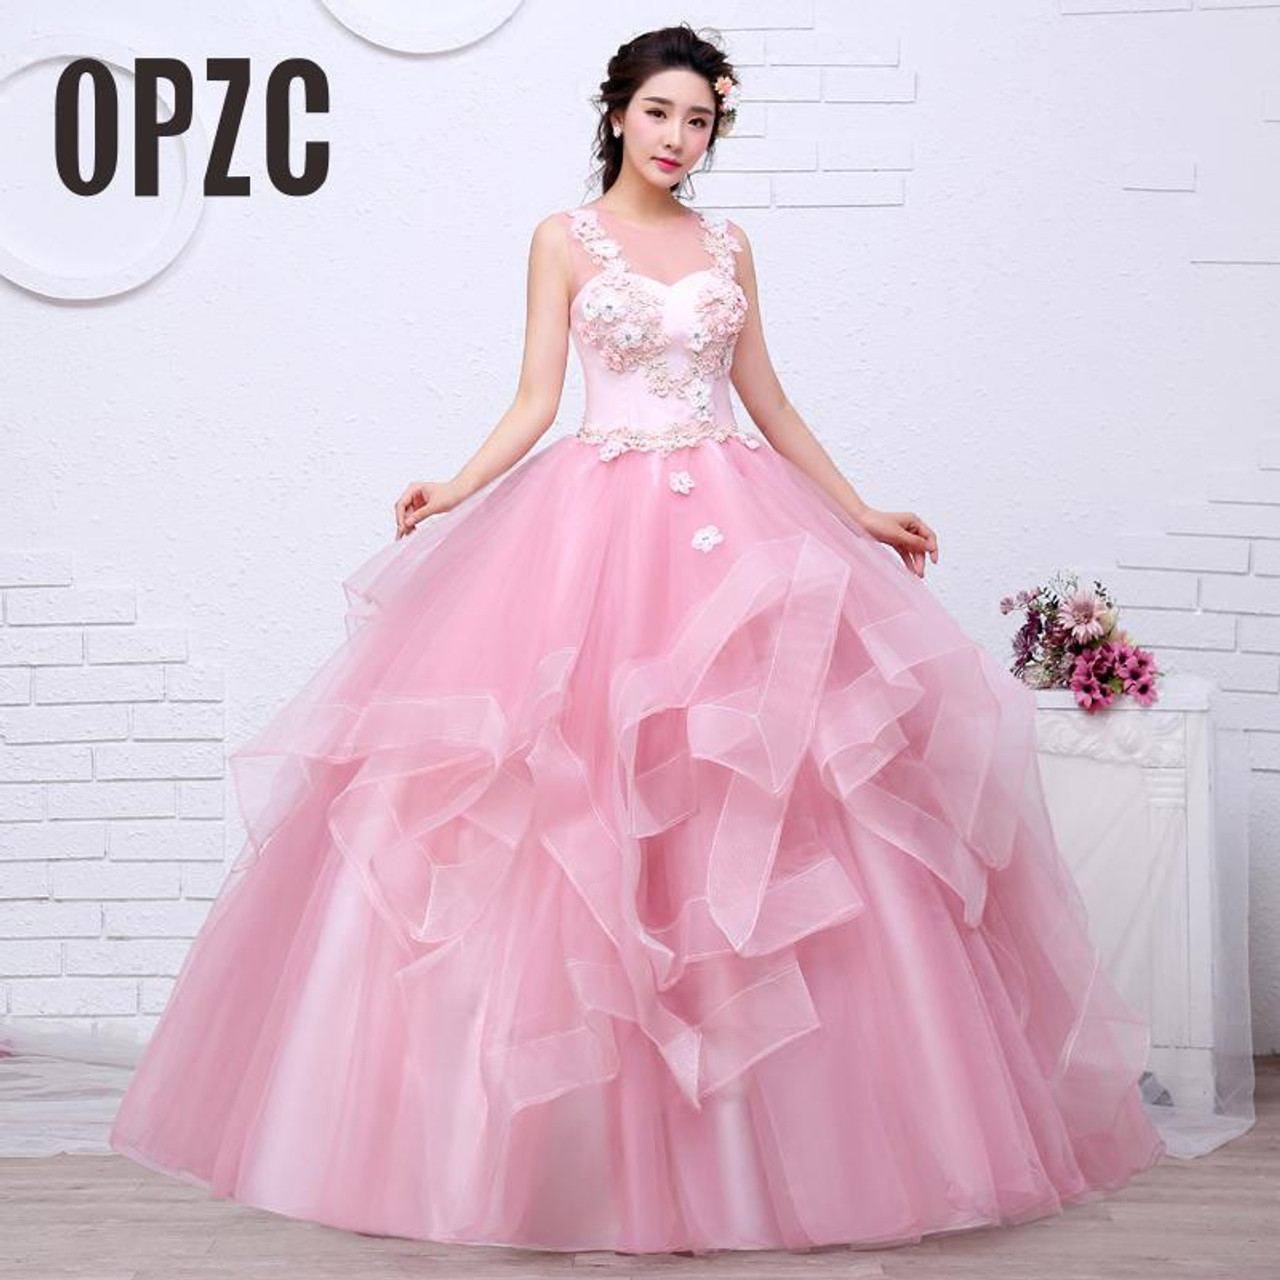 free shippin pink color yarn girls wedding dress 2017 new fashion simple  female art exam gowns part dress vestidos de novia